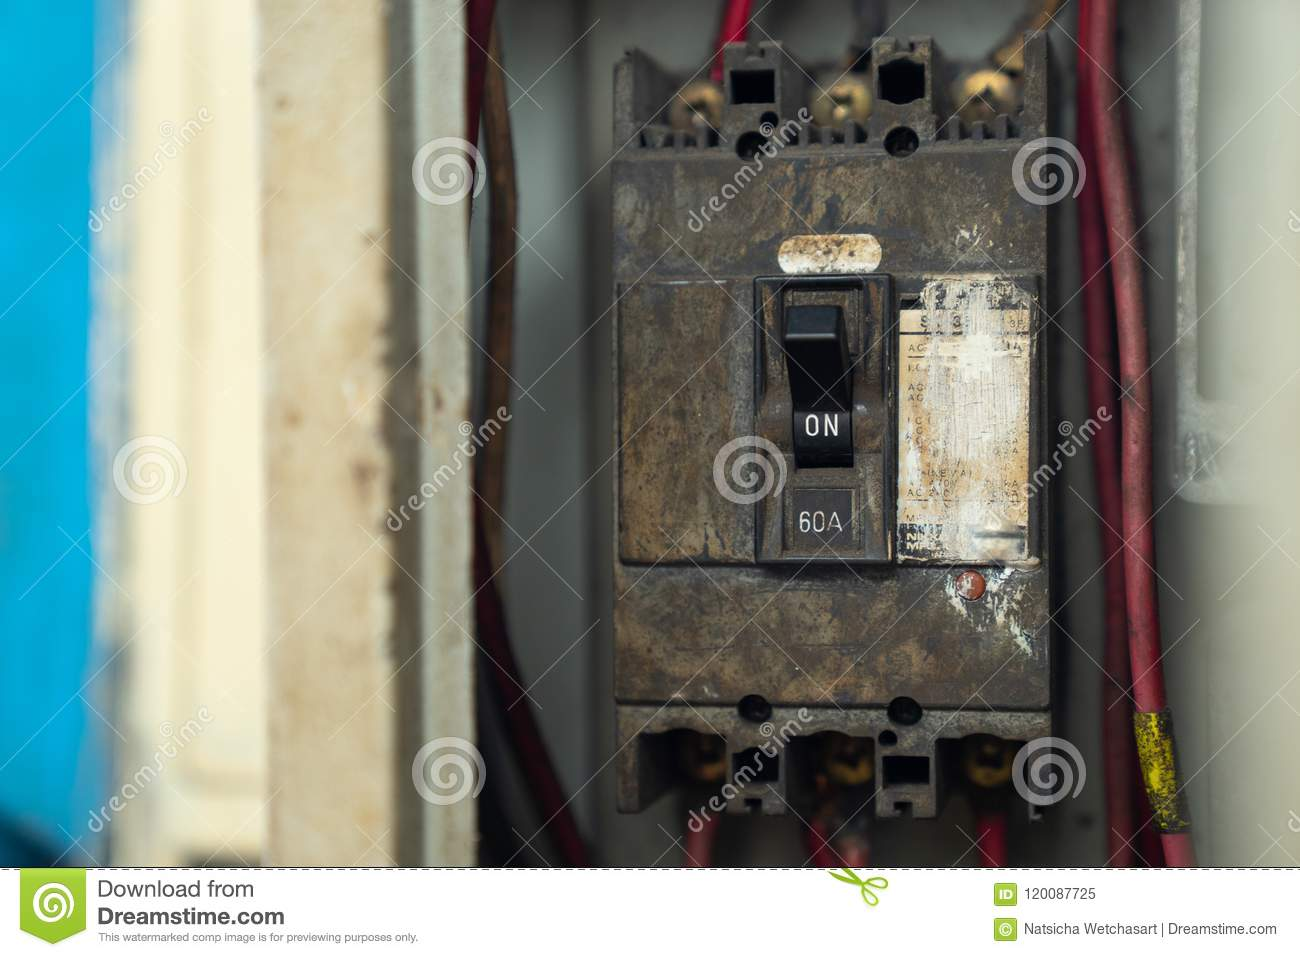 Awesome Old And Dirty Breakers Switch In Electric Box Circuit Breakers Ranpur Mohammedshrine Wiring Digital Resources Ranpurmohammedshrineorg